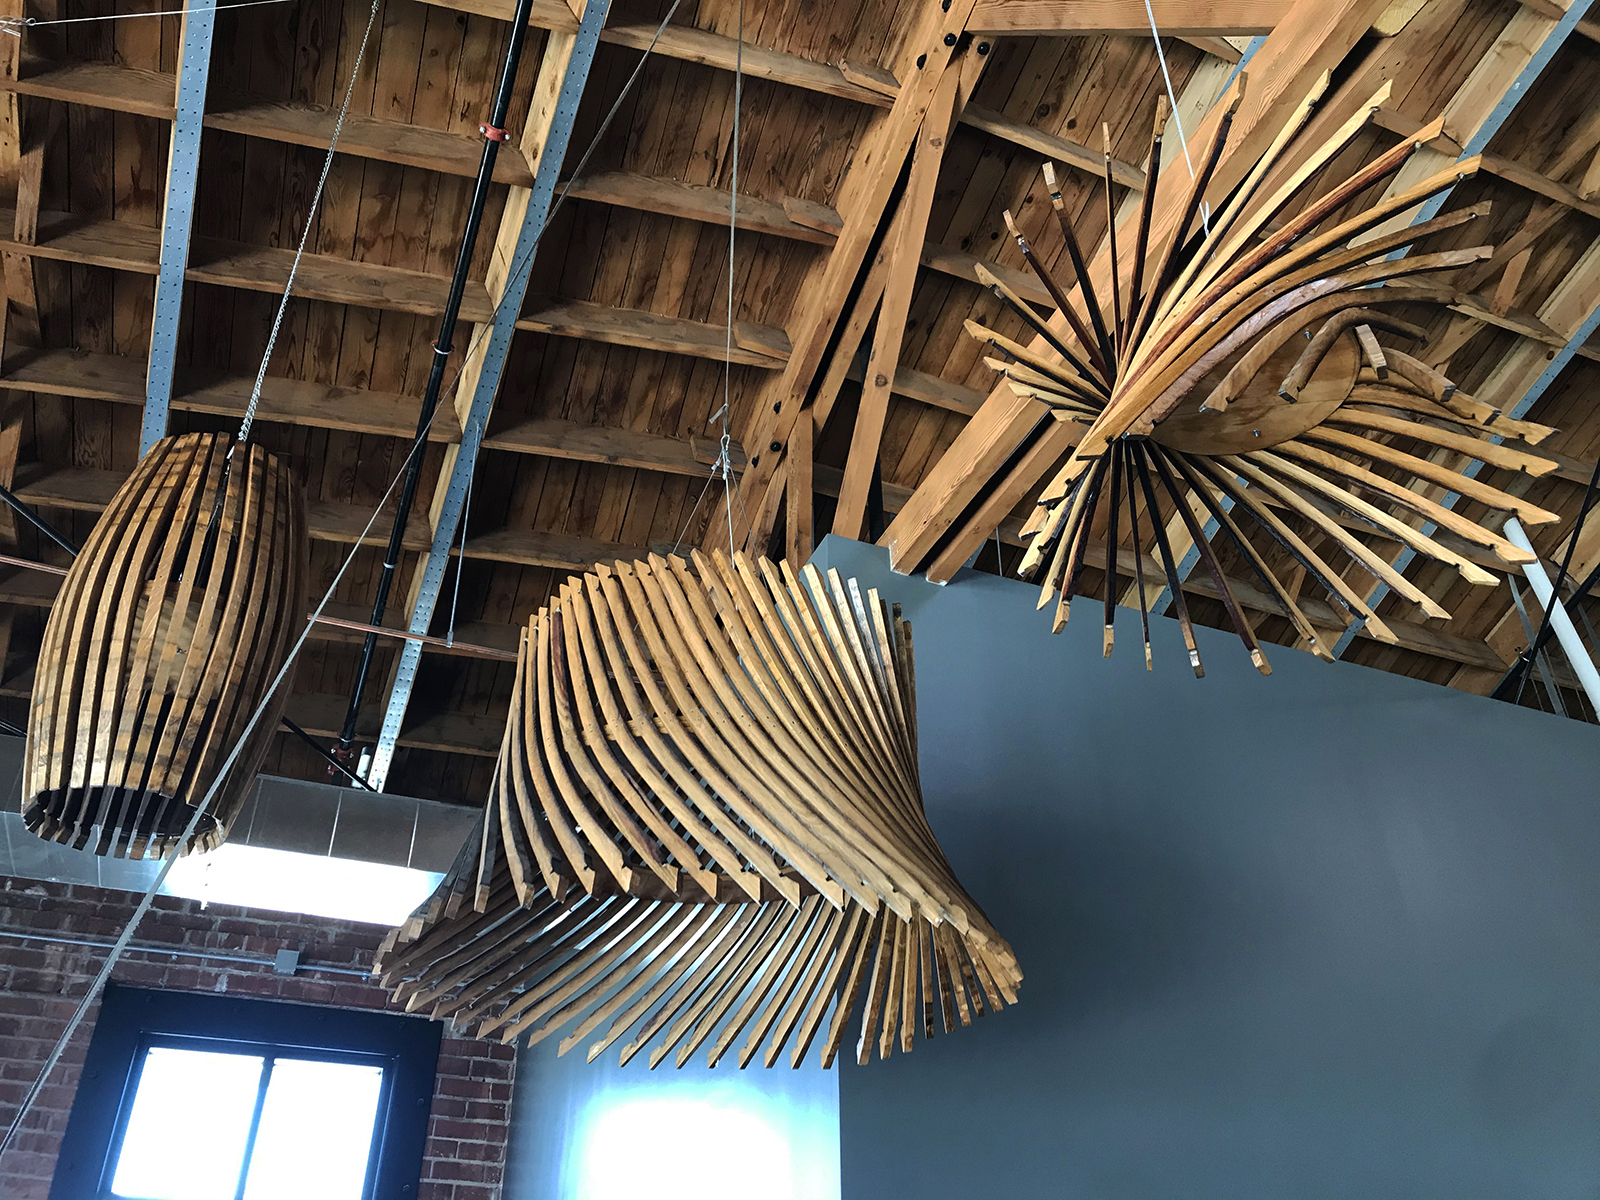 Reclaimed Oak Wine Barrels crafted into sculpture hanging from ceiling